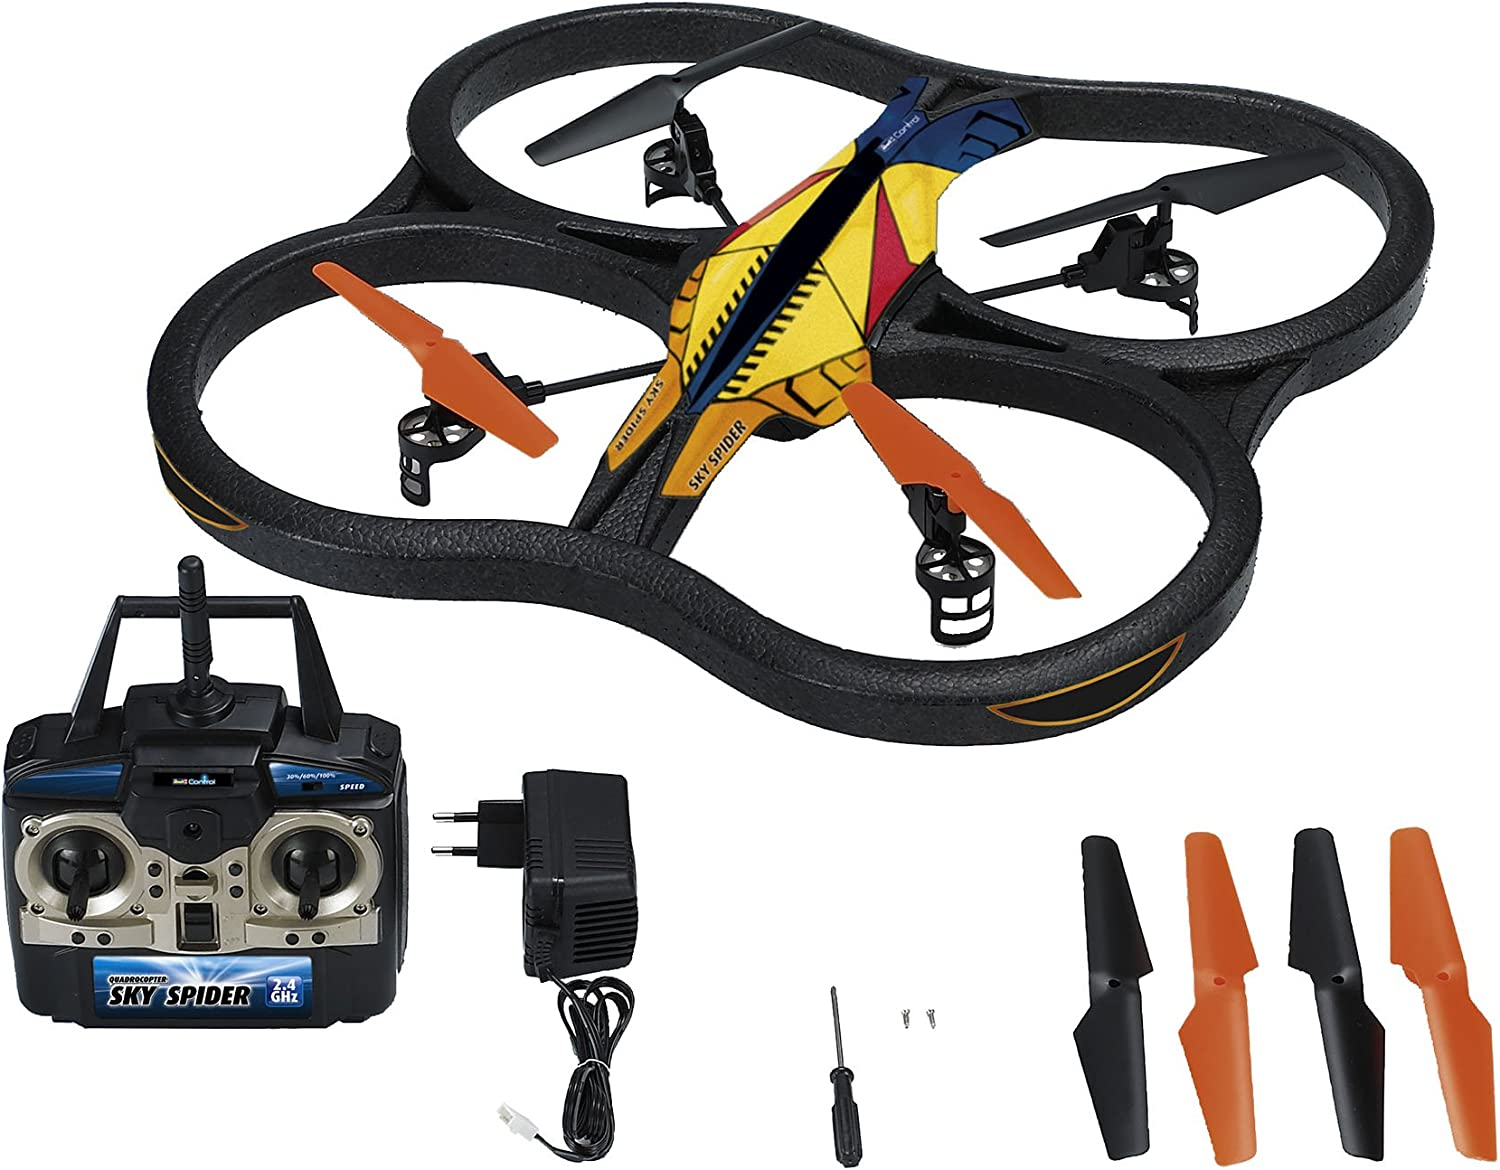 Revell Control 23978 - Quadrocopter, Sky Spider, RTF 4CH ferngesteuerter Helikopter B00E9S1D2I Sehr gute Qualität  | Up-to-date Styling